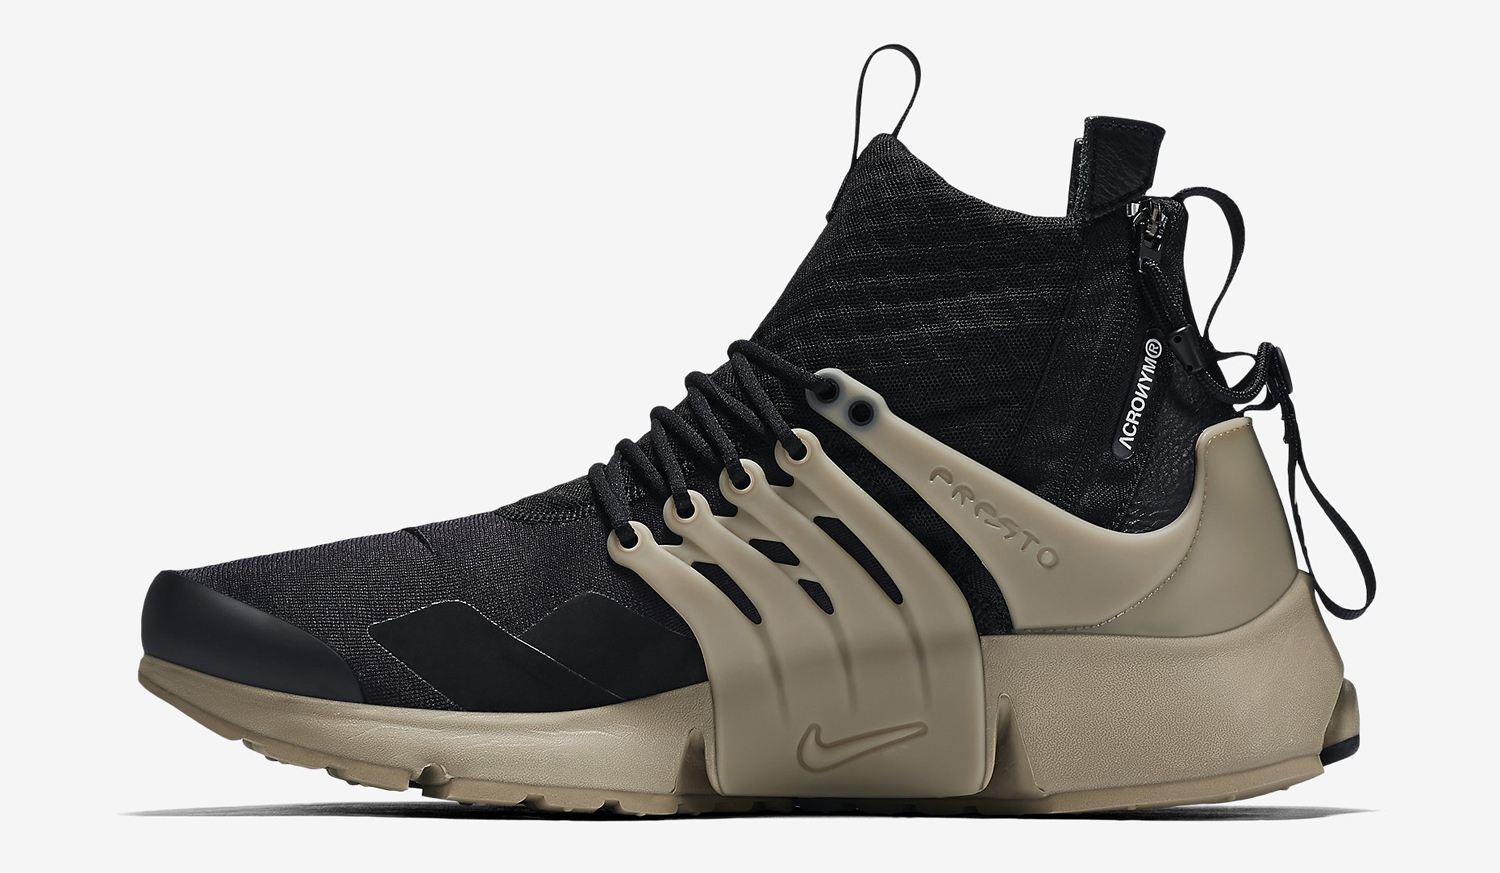 Nike Collector Presto Sole Date Release Air Acronym Axwqg1dSOA